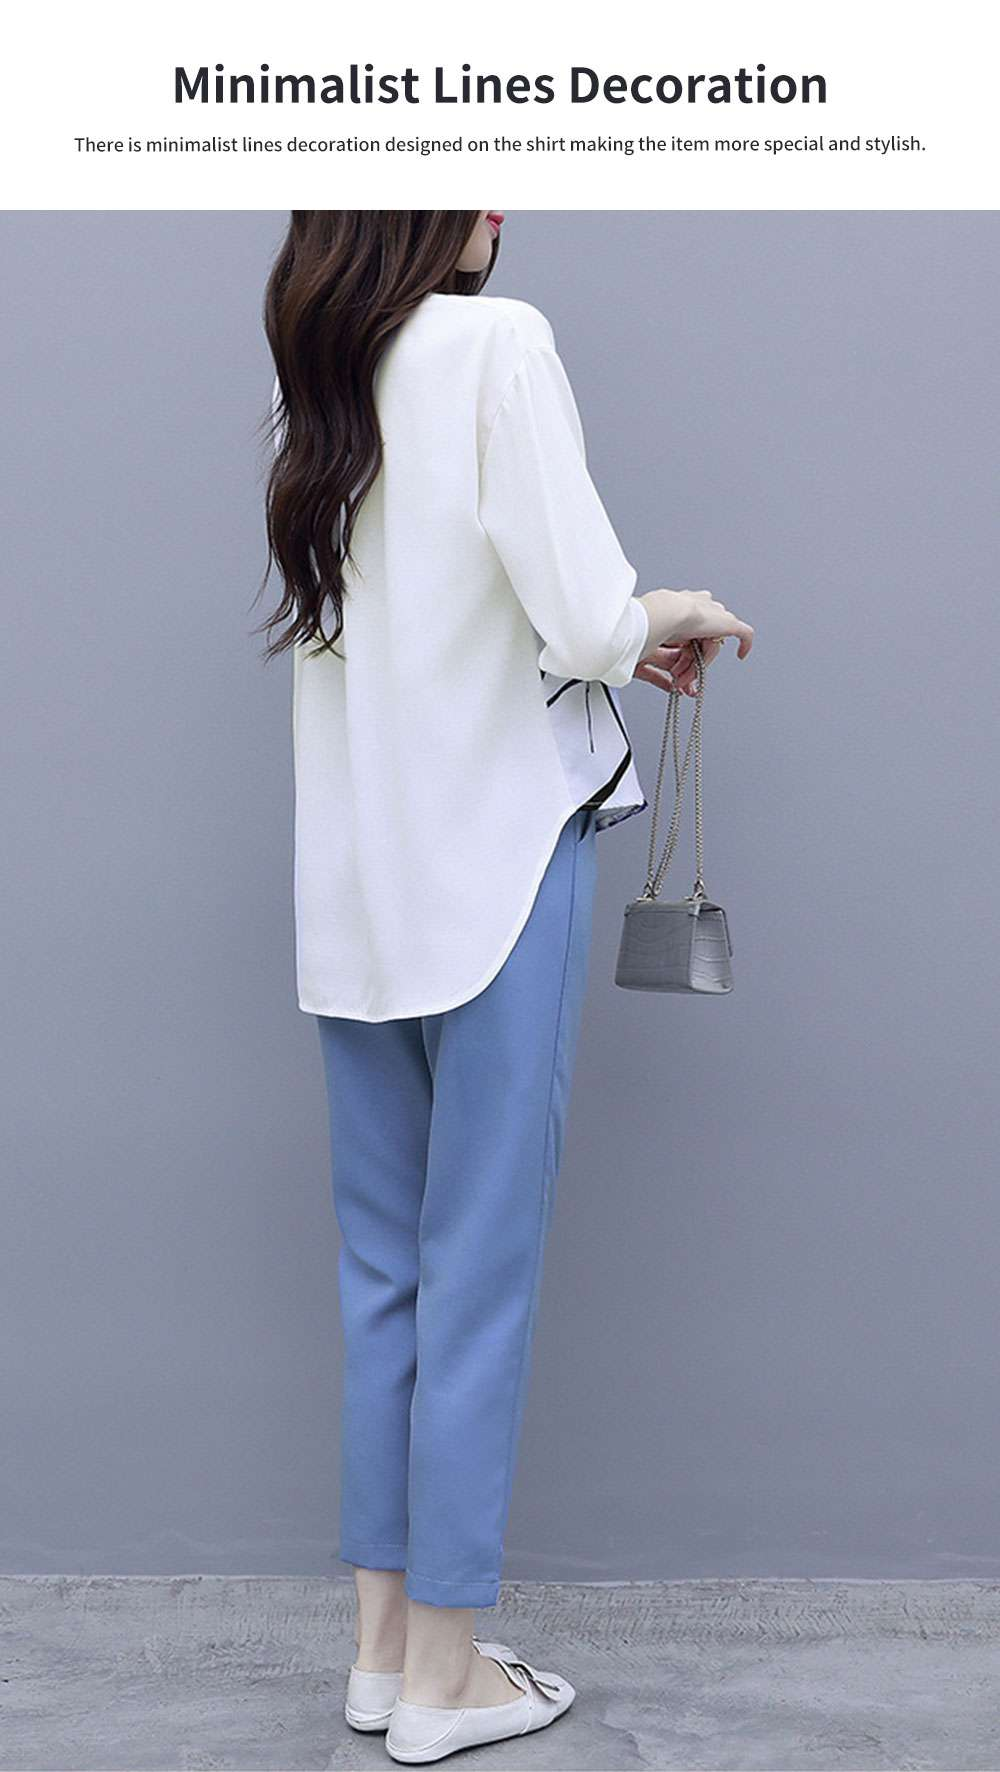 Minimalist Atmosphere Spring Lady Shirt Casual Trousers Suit Fashion Light Feet Pants Jointed Style Top for Women 2